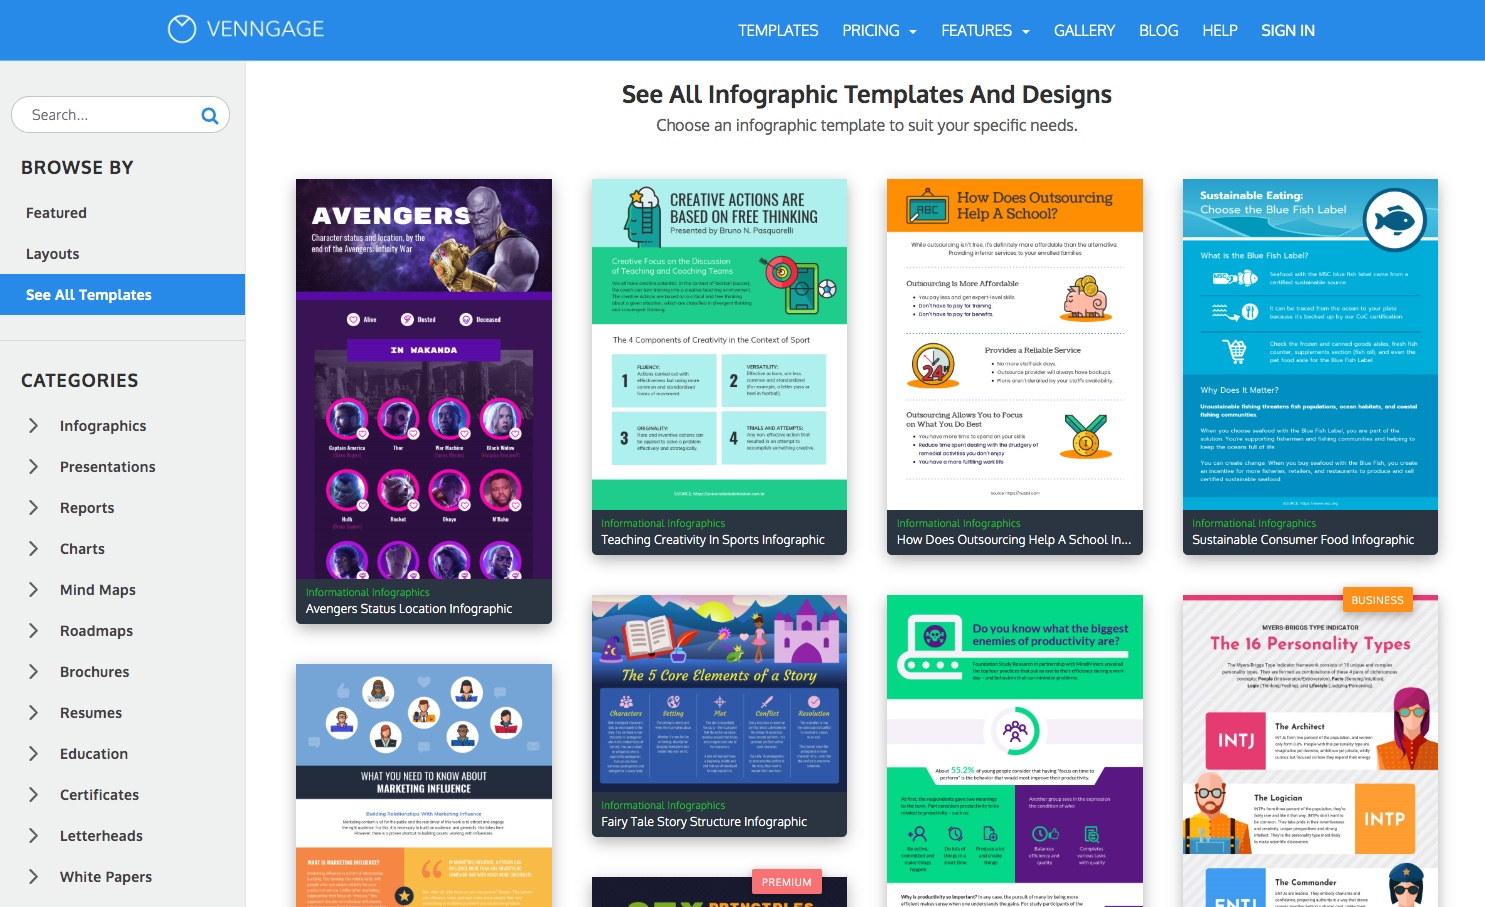 Venngage templates of infographics inside the tool